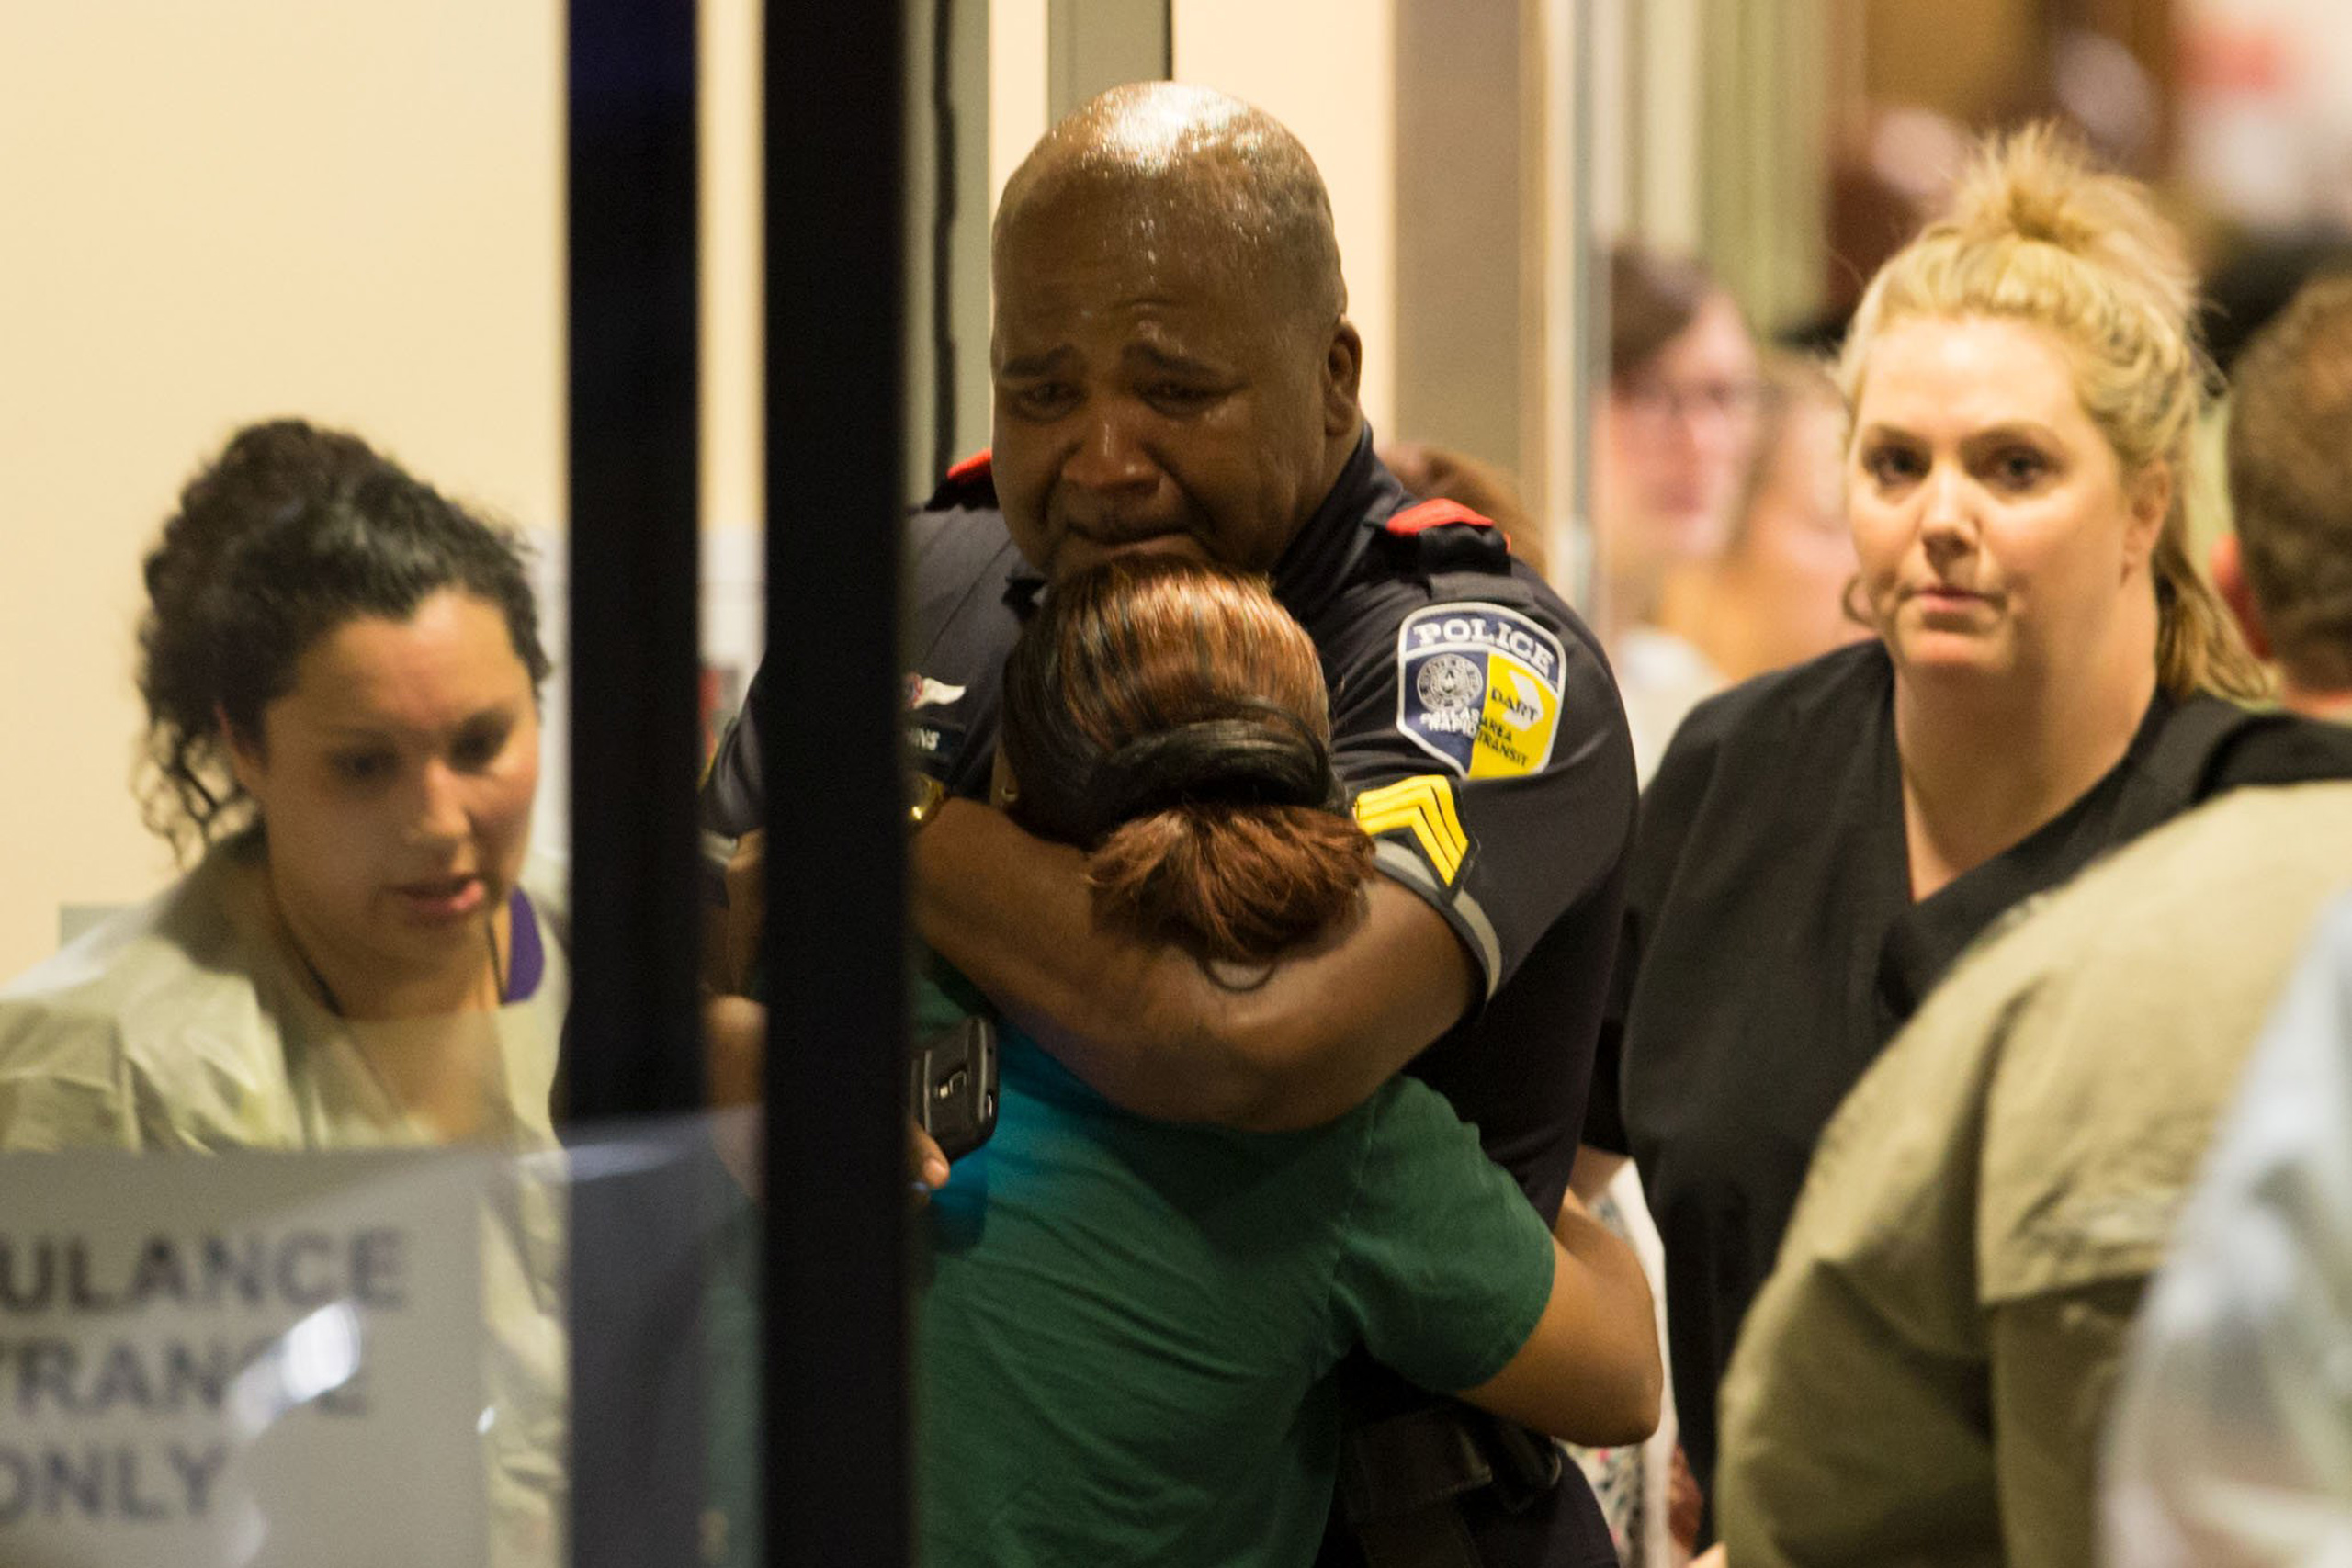 A Dallas Area Rapid Transit police officer receives comfort at the Baylor University Hospital emergency room entrance on July 7, 2016.